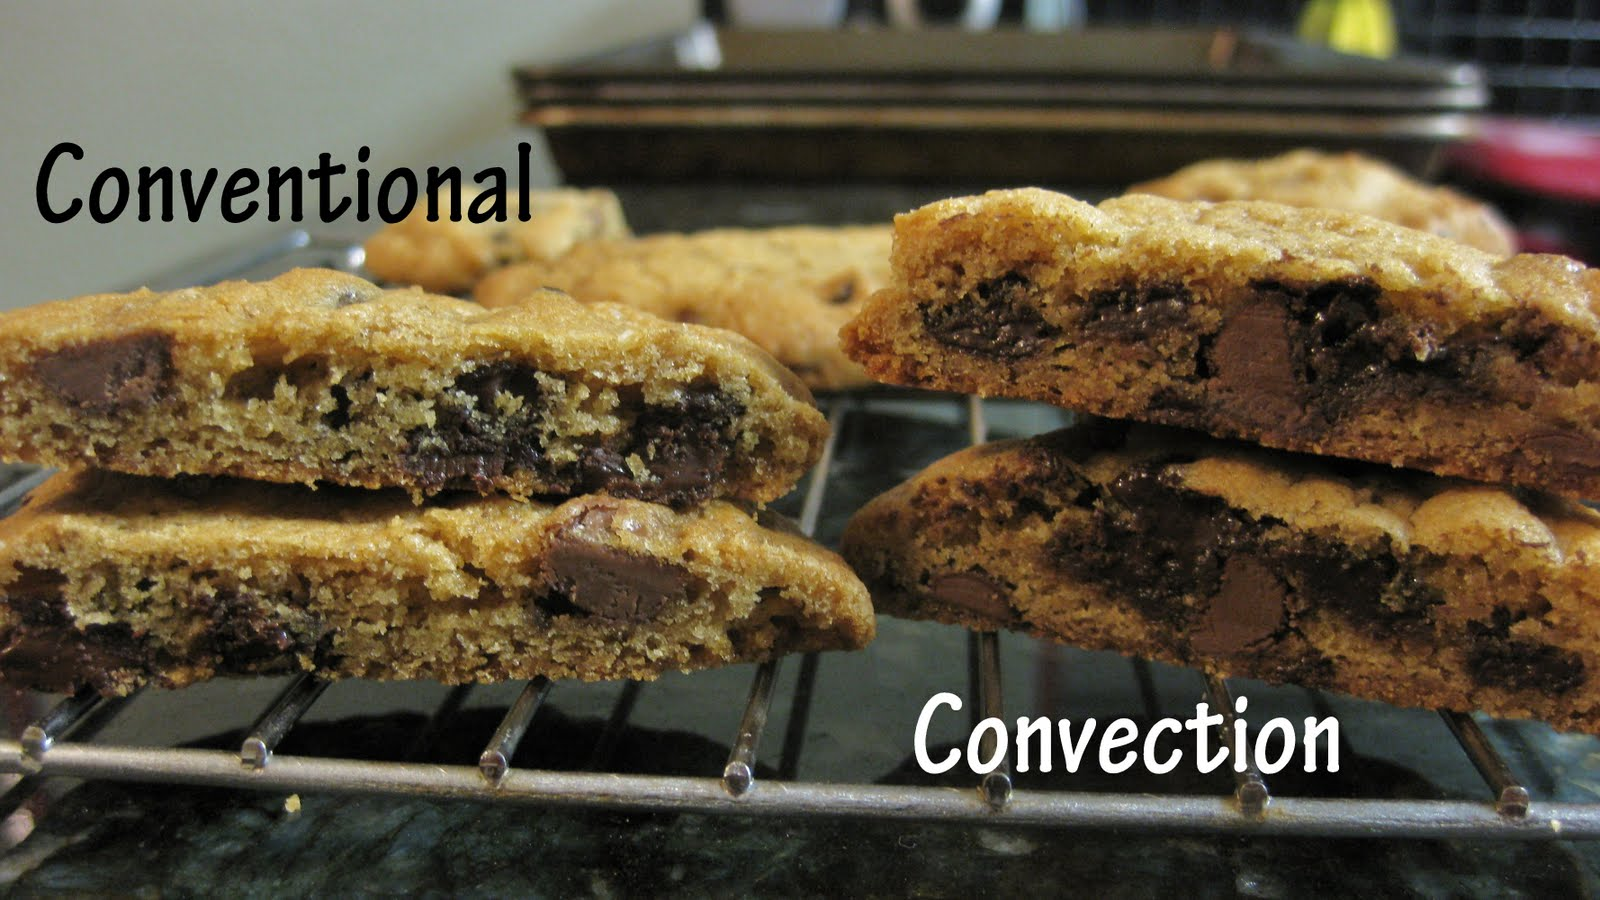 Countertop Convection Oven Vs Conventional Oven : Not the Normal Teenage Fare: The GREAT Chocolate Chip Cookie ...